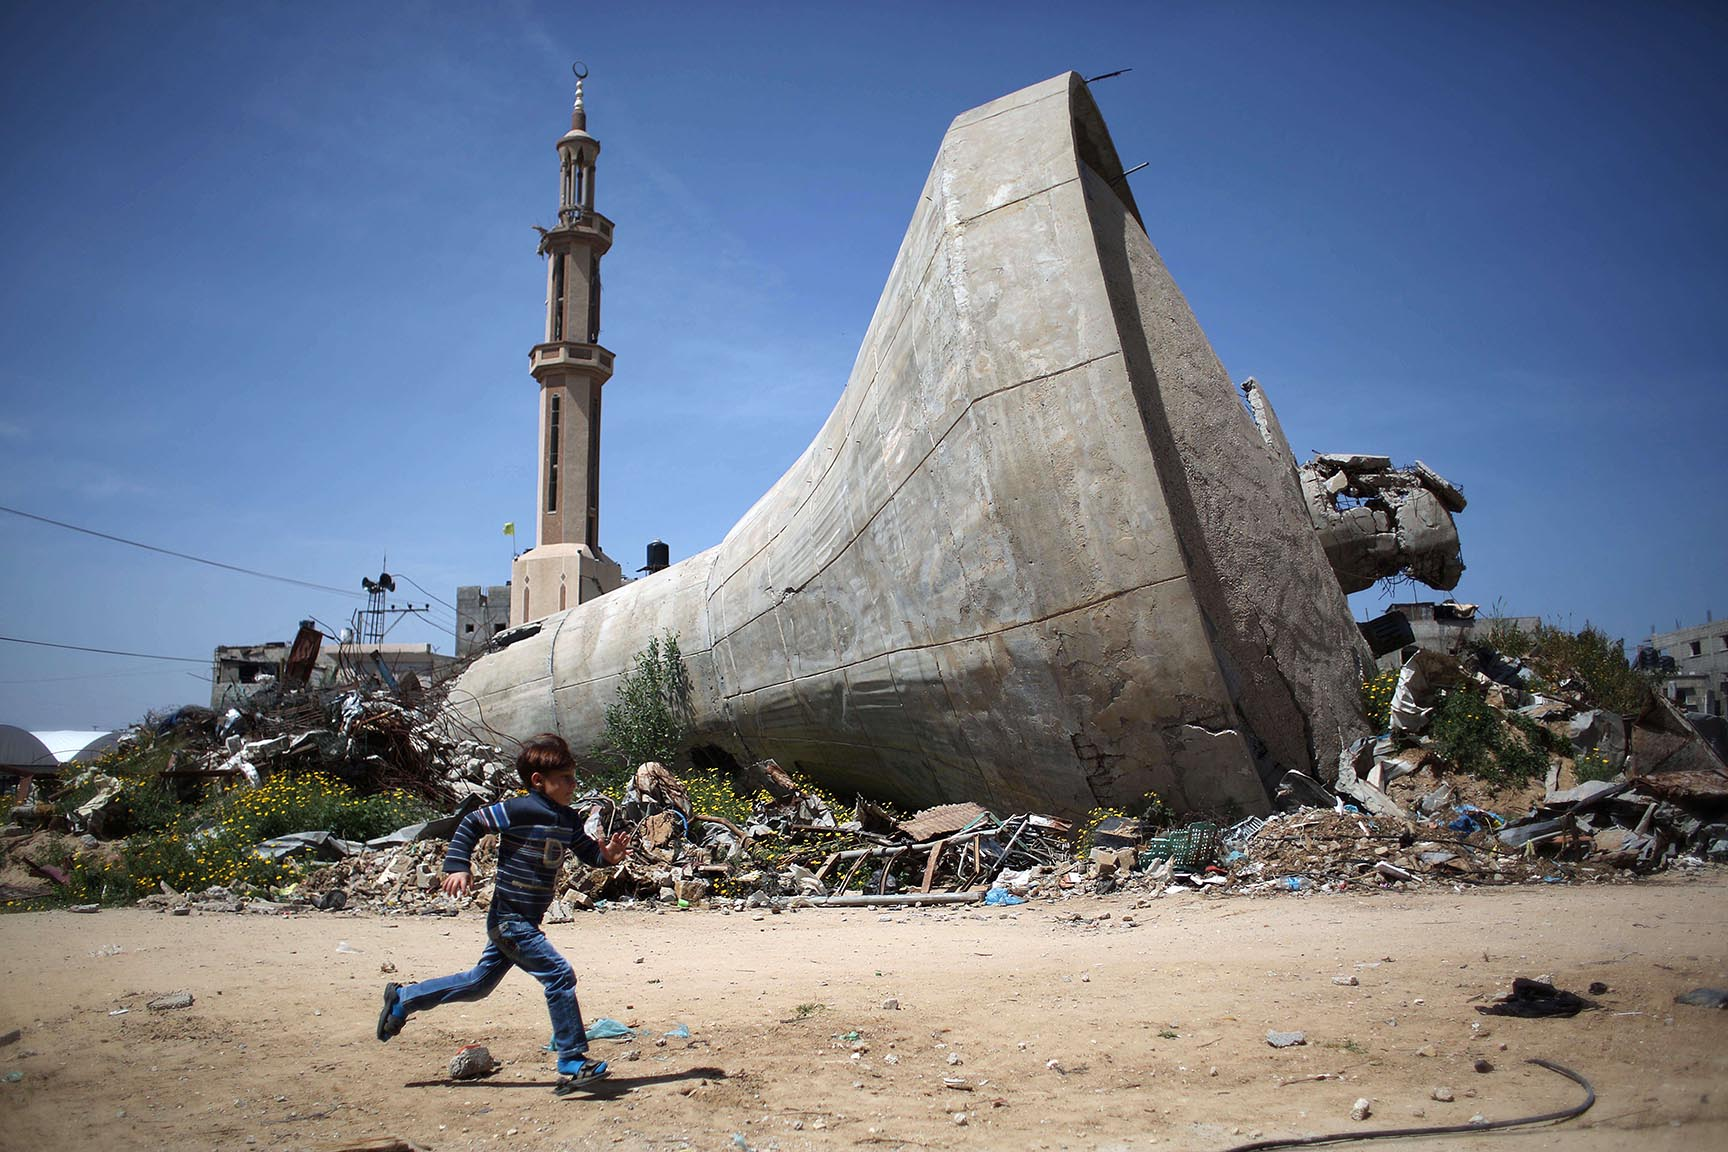 A Palestinian child runs past a water tank